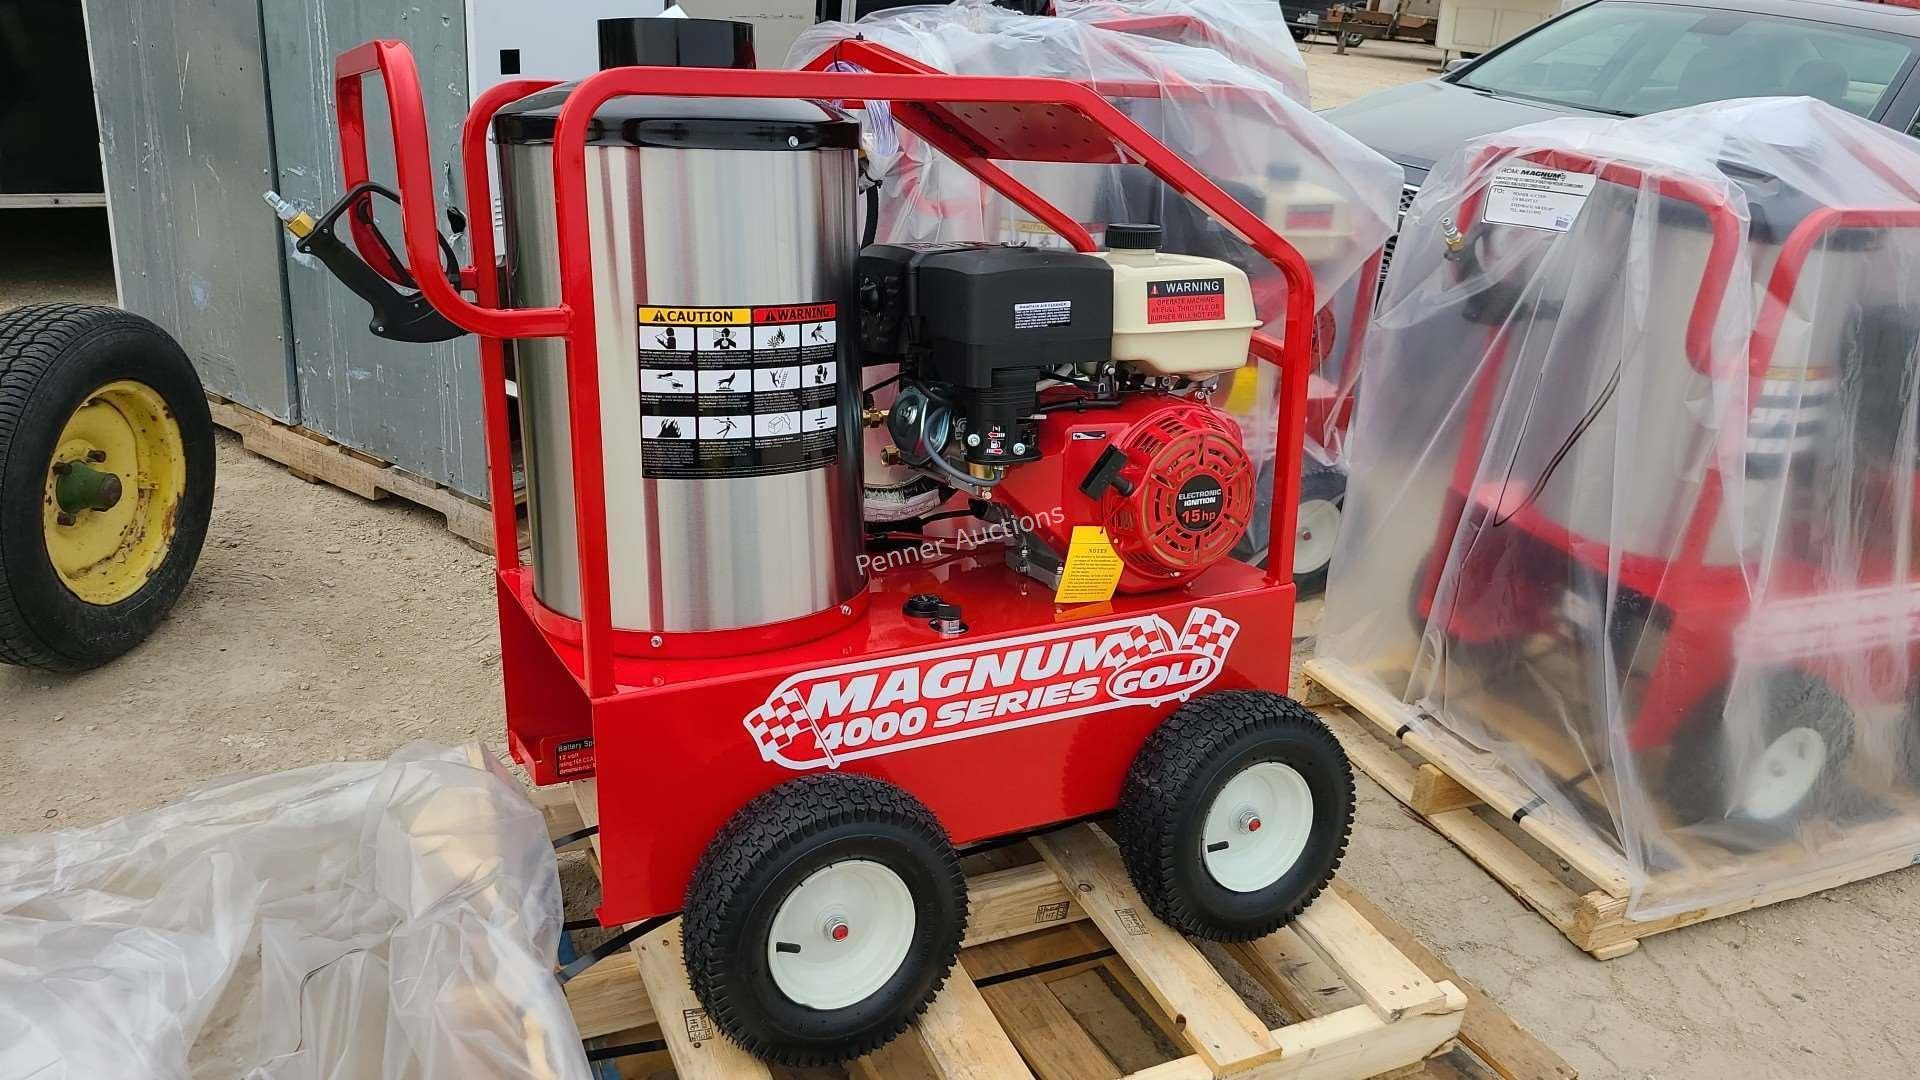 Easy-Kleen Hot Water Pressure Washer 4000 PSI